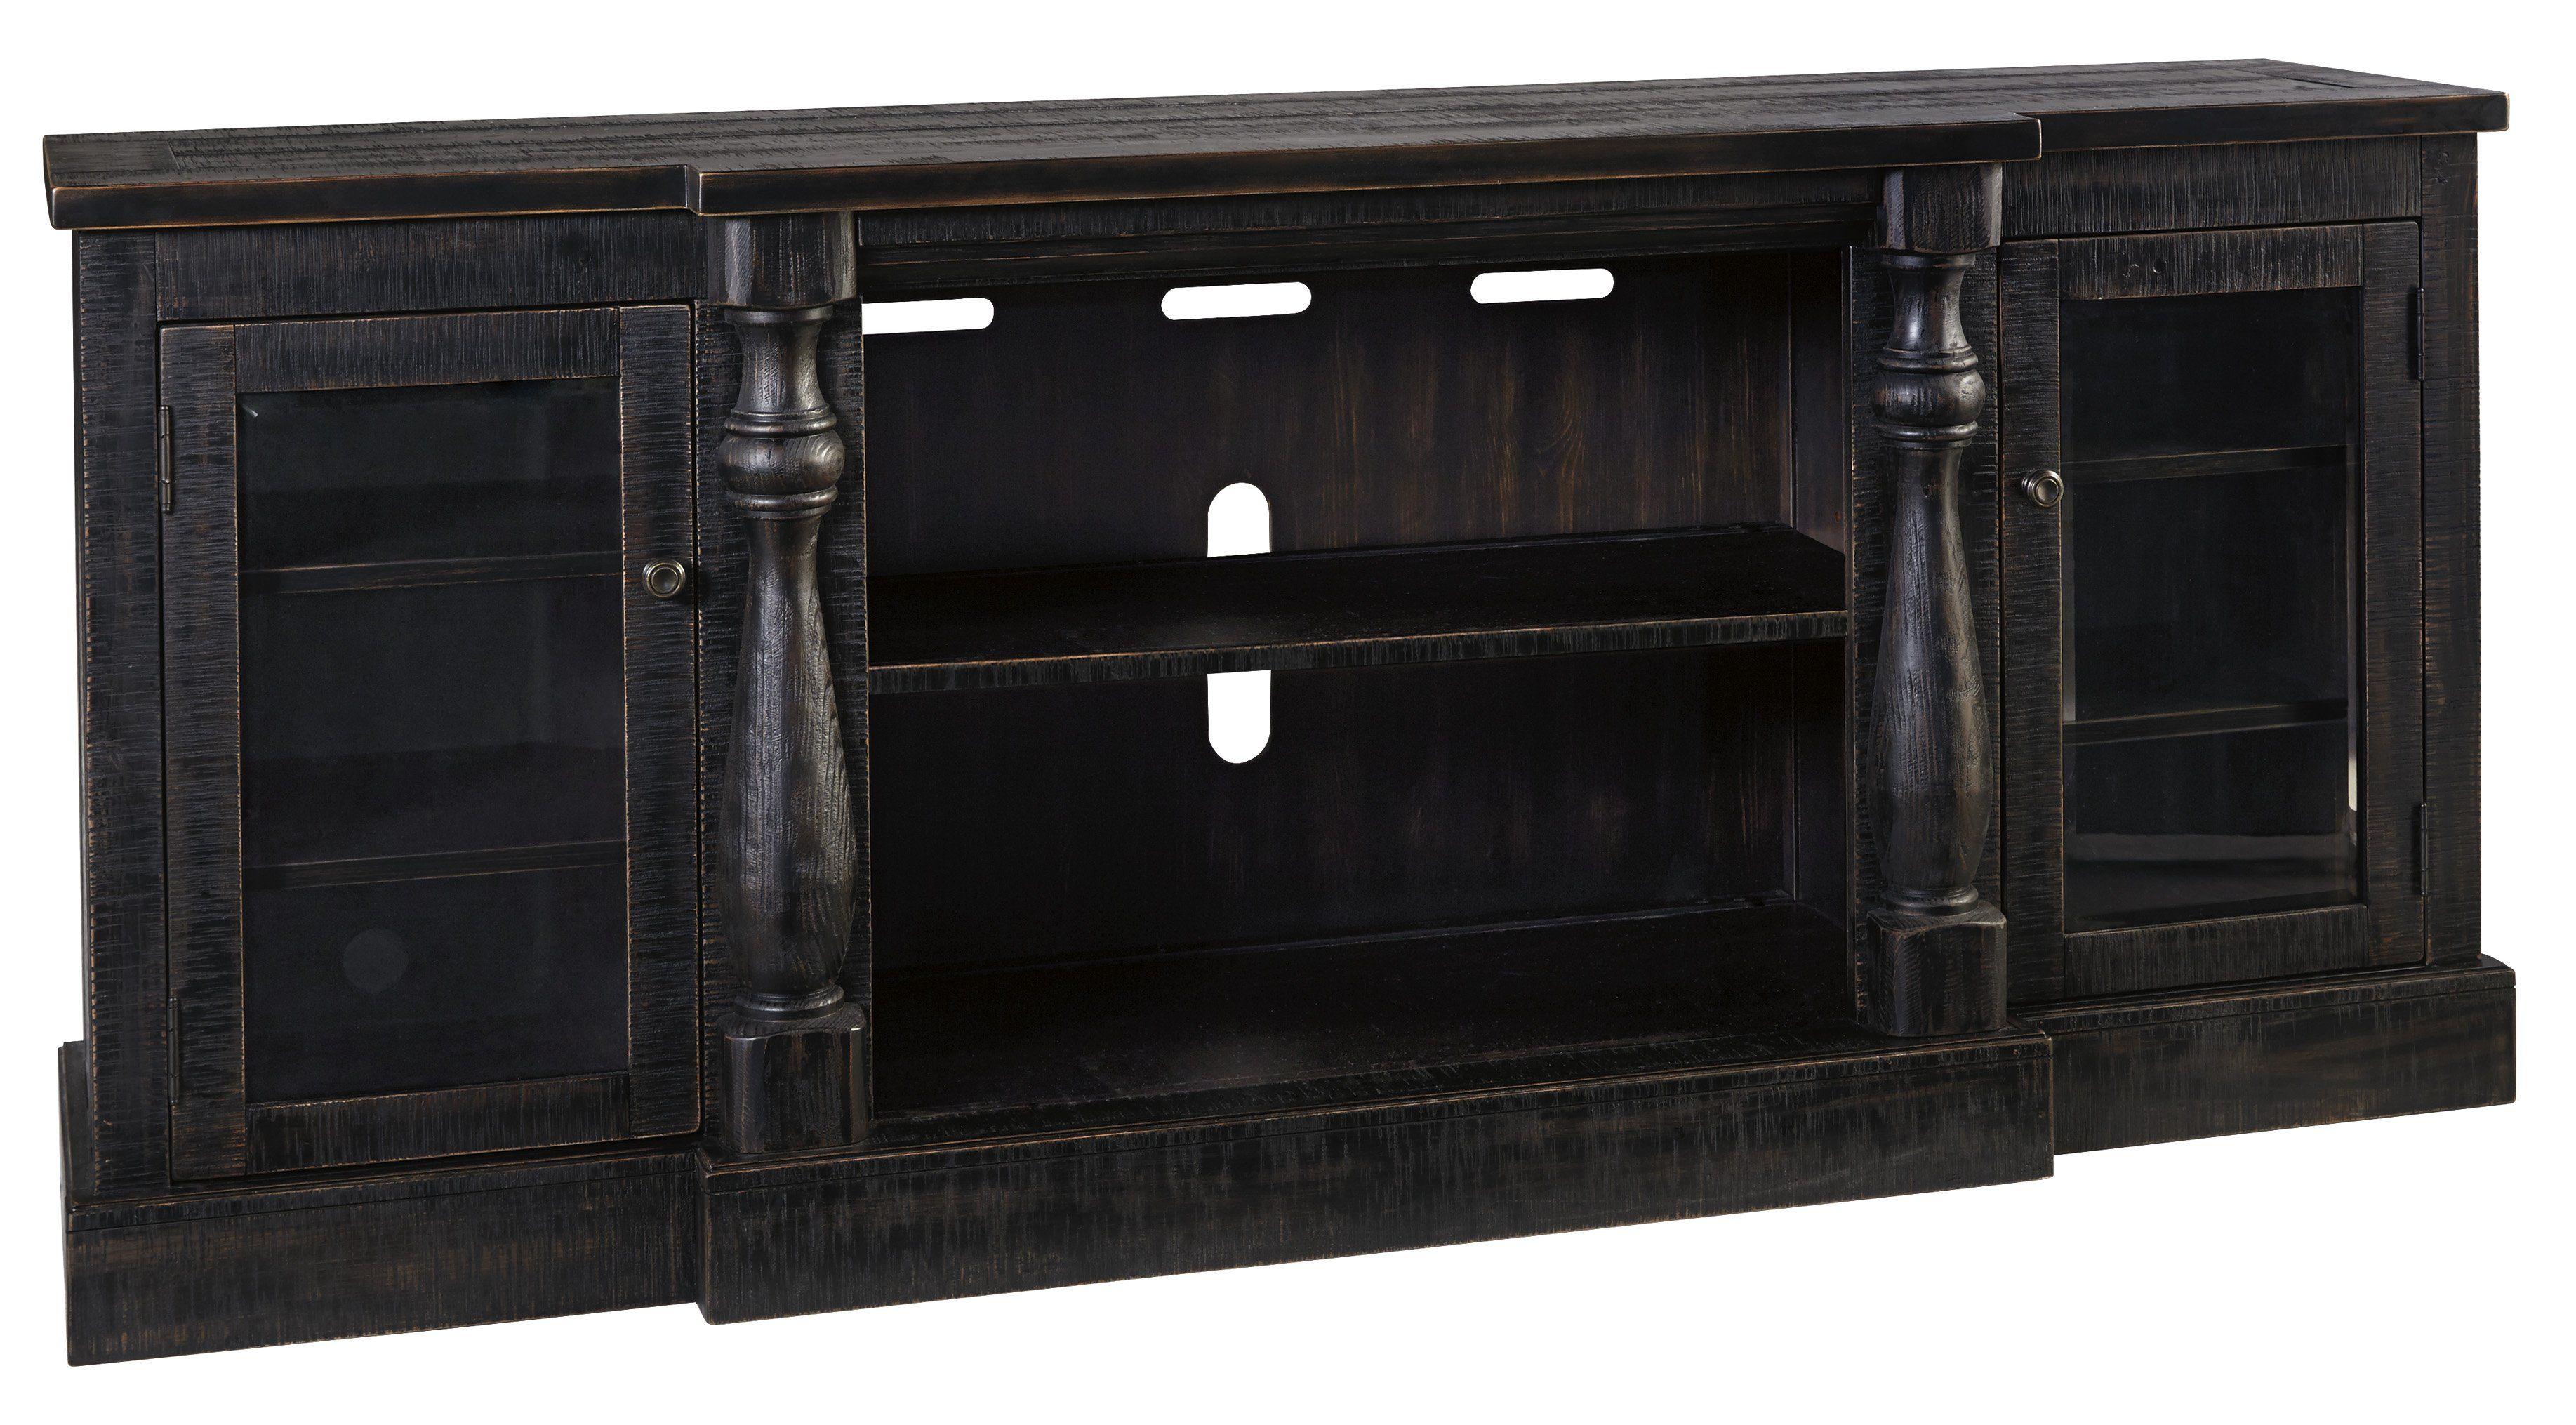 Mallacar Xl Tv Stand | Products | Pinterest | Fireplace Tv Stand In Wakefield 97 Inch Tv Stands (View 2 of 30)